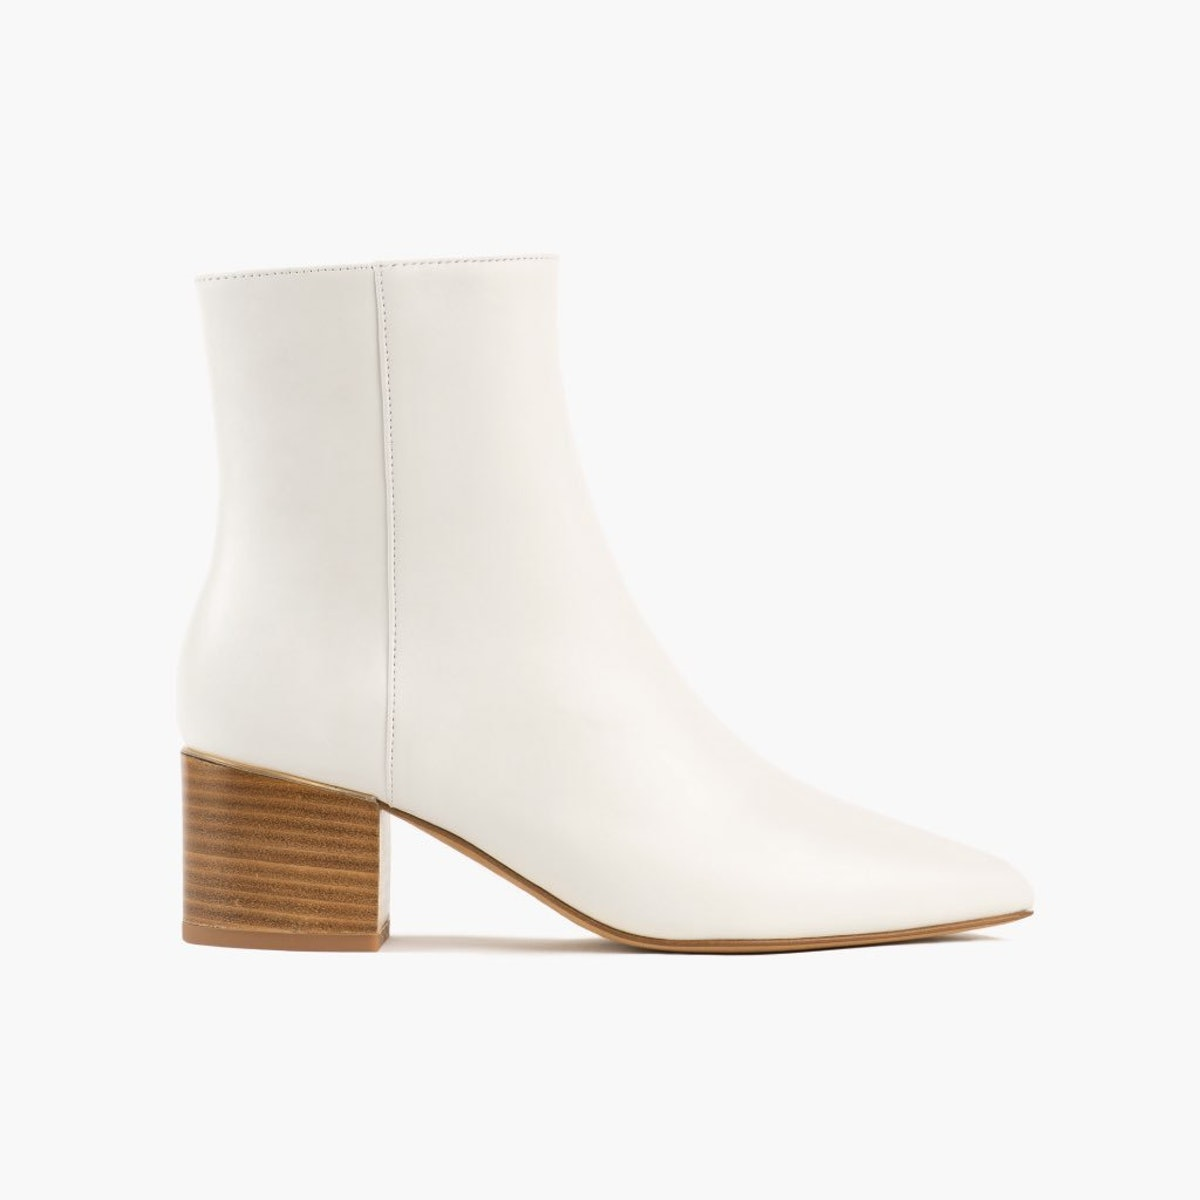 Luna bootie in white ecru leather from Thursday Boot Company.